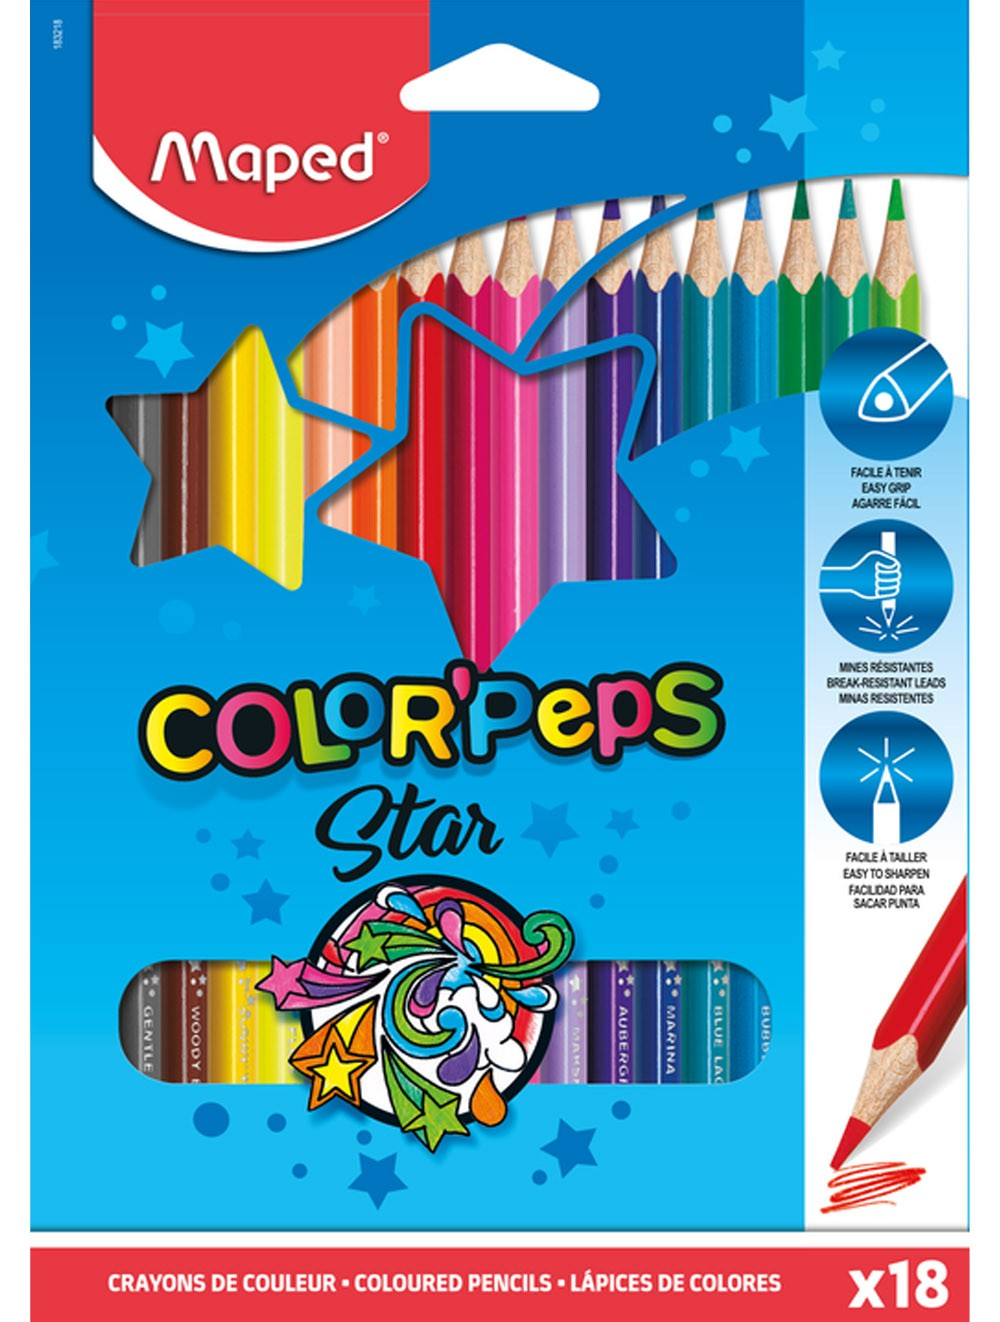 MAPED COLOR PEP'S STAR- BOX OF 18 COLOUR PENCILS